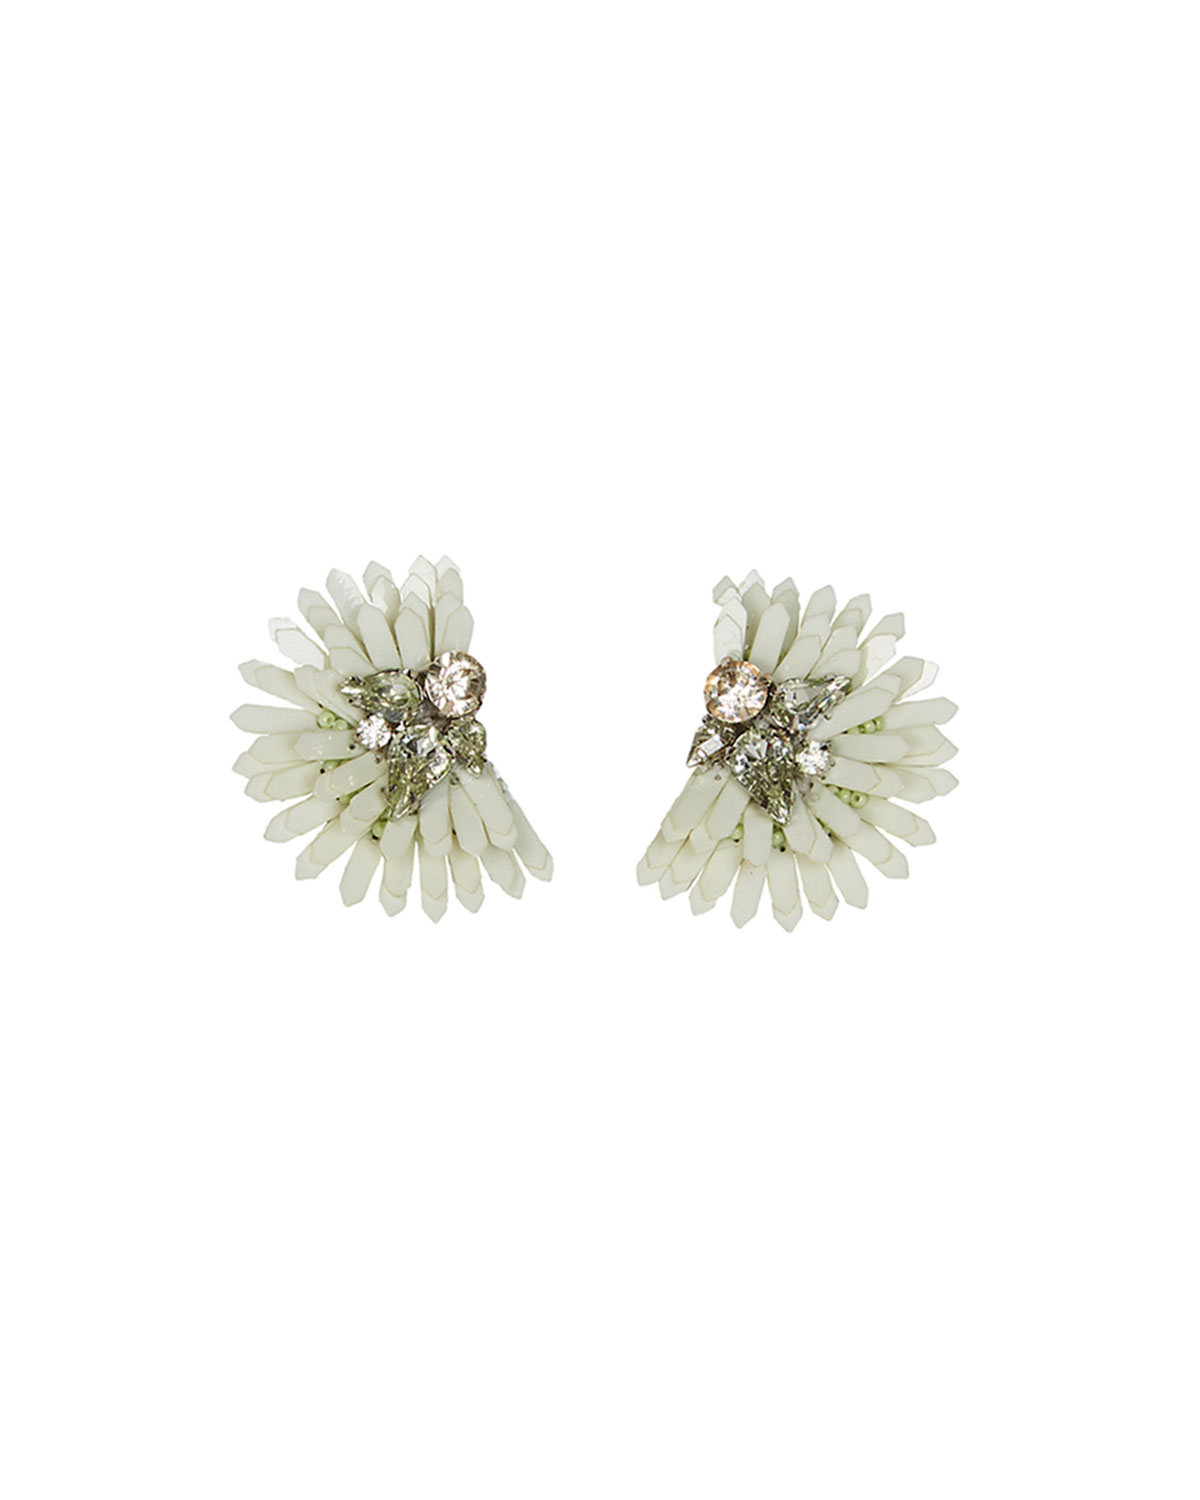 Mignonne Gavigan  ELLIE BUTTON EARRINGS